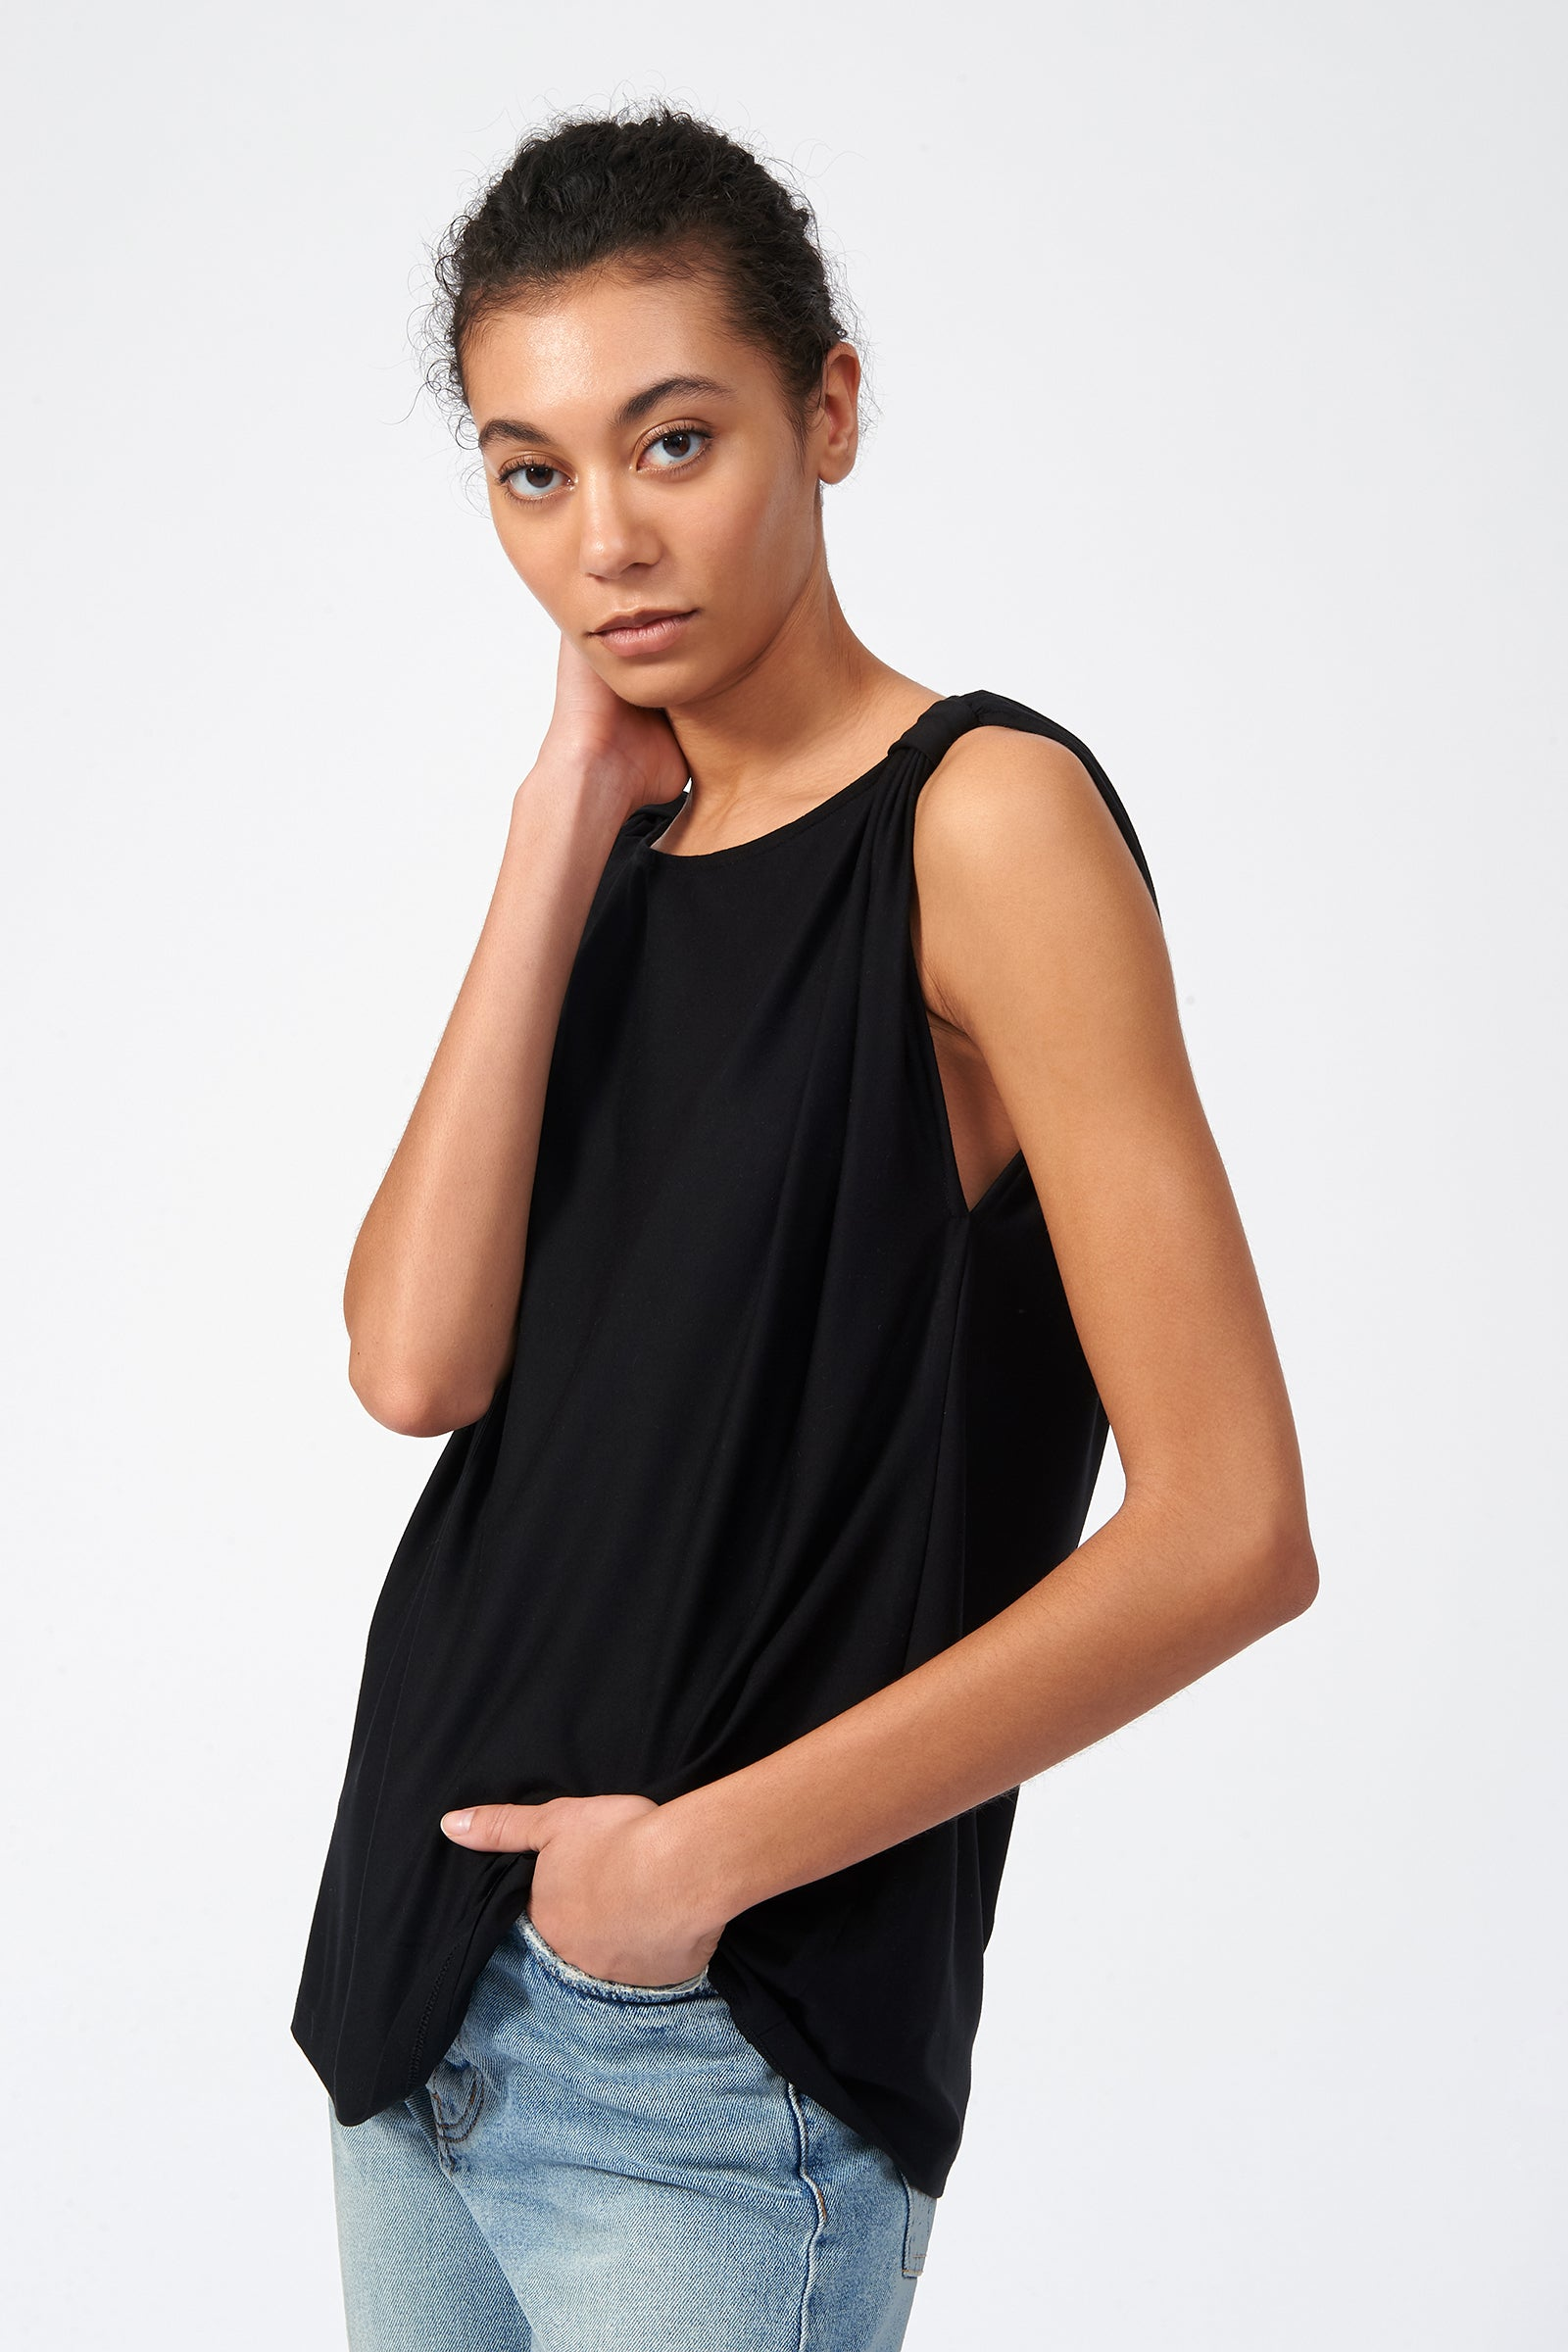 Kal Rieman Knot Shoulder Tee in Black on Model Side View